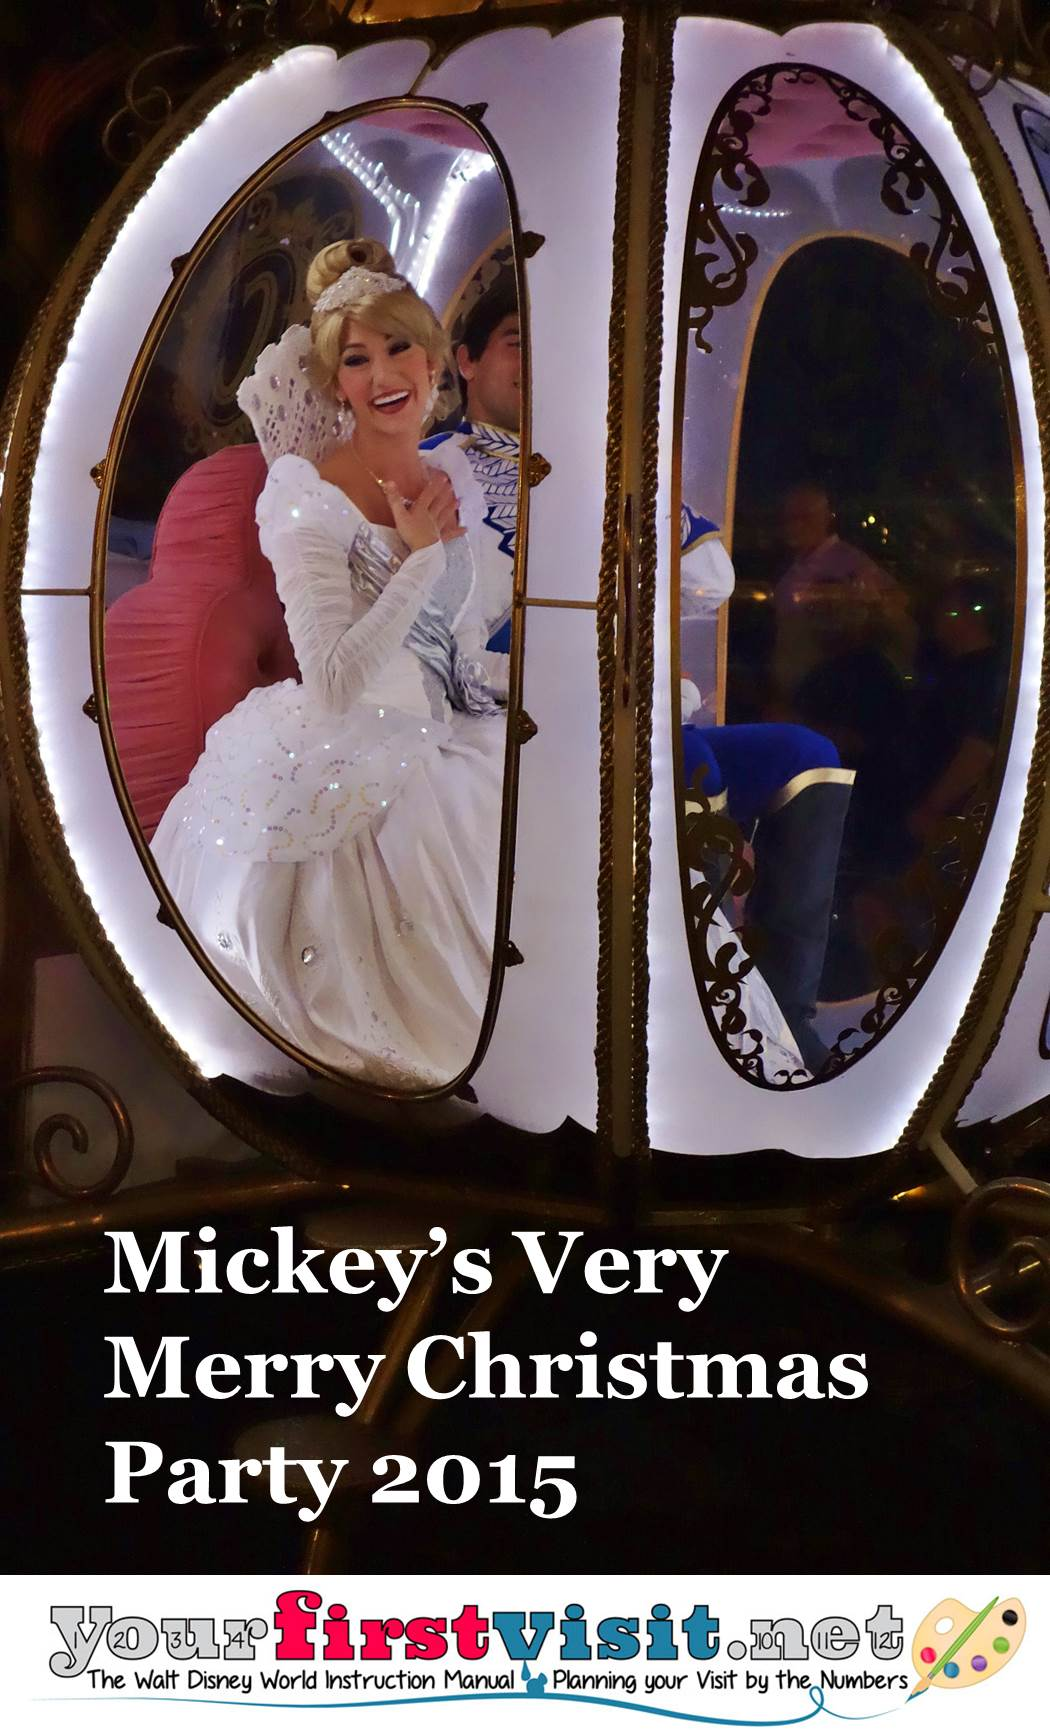 Review Mickey's Very Merry Christmas Party 2015 from yourfirstvisit.net